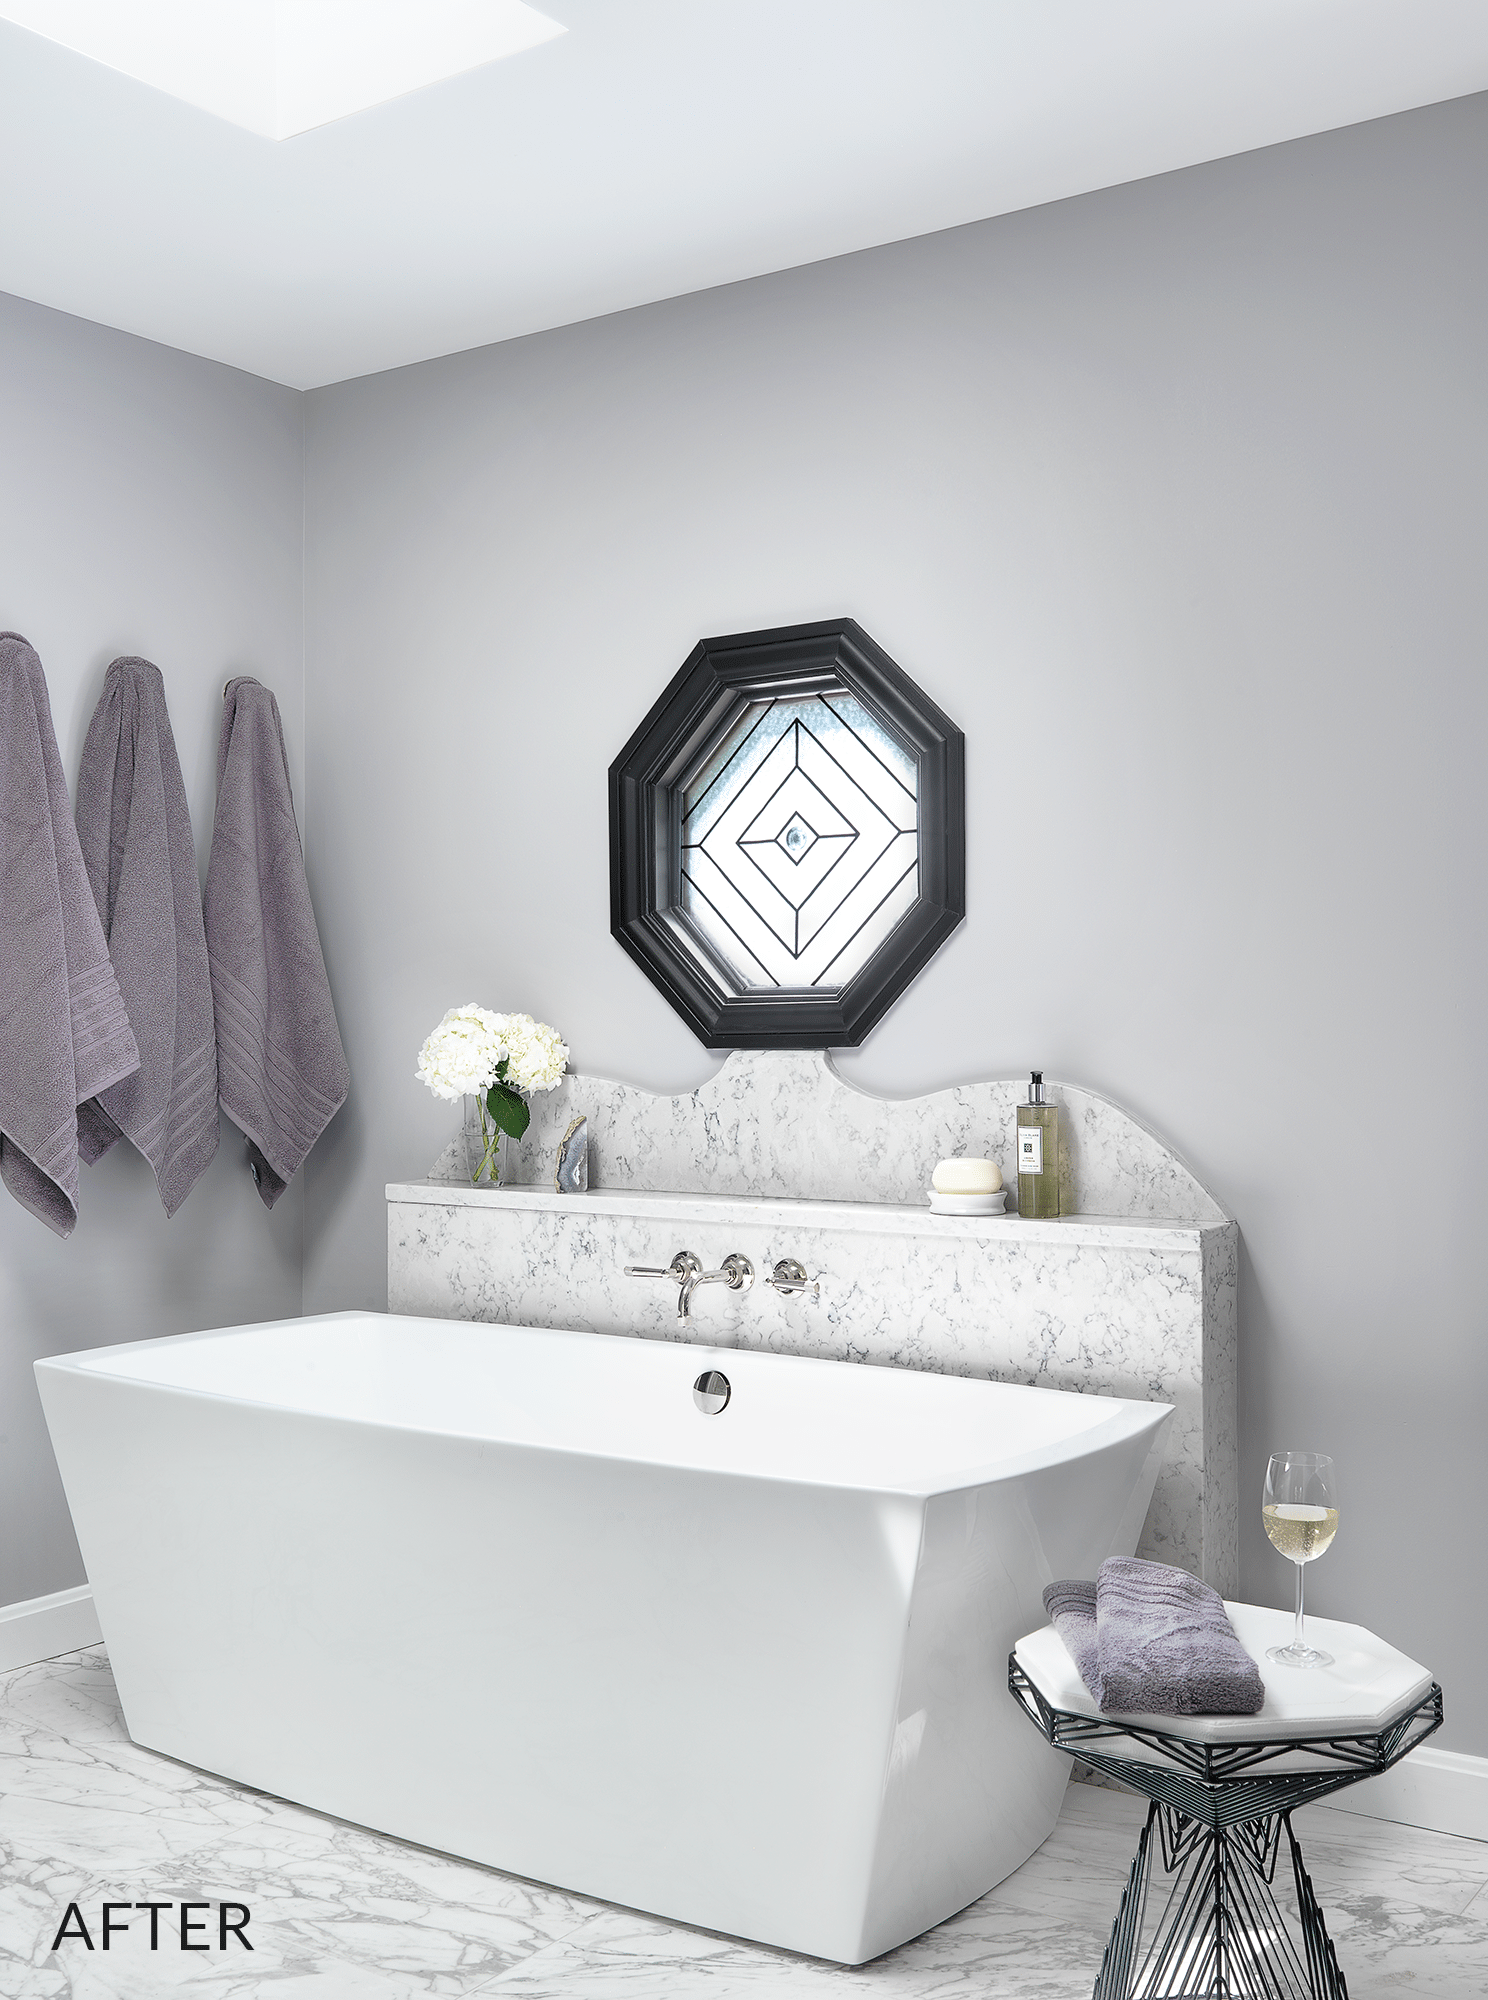 Three gray bath towel hung near bathtub